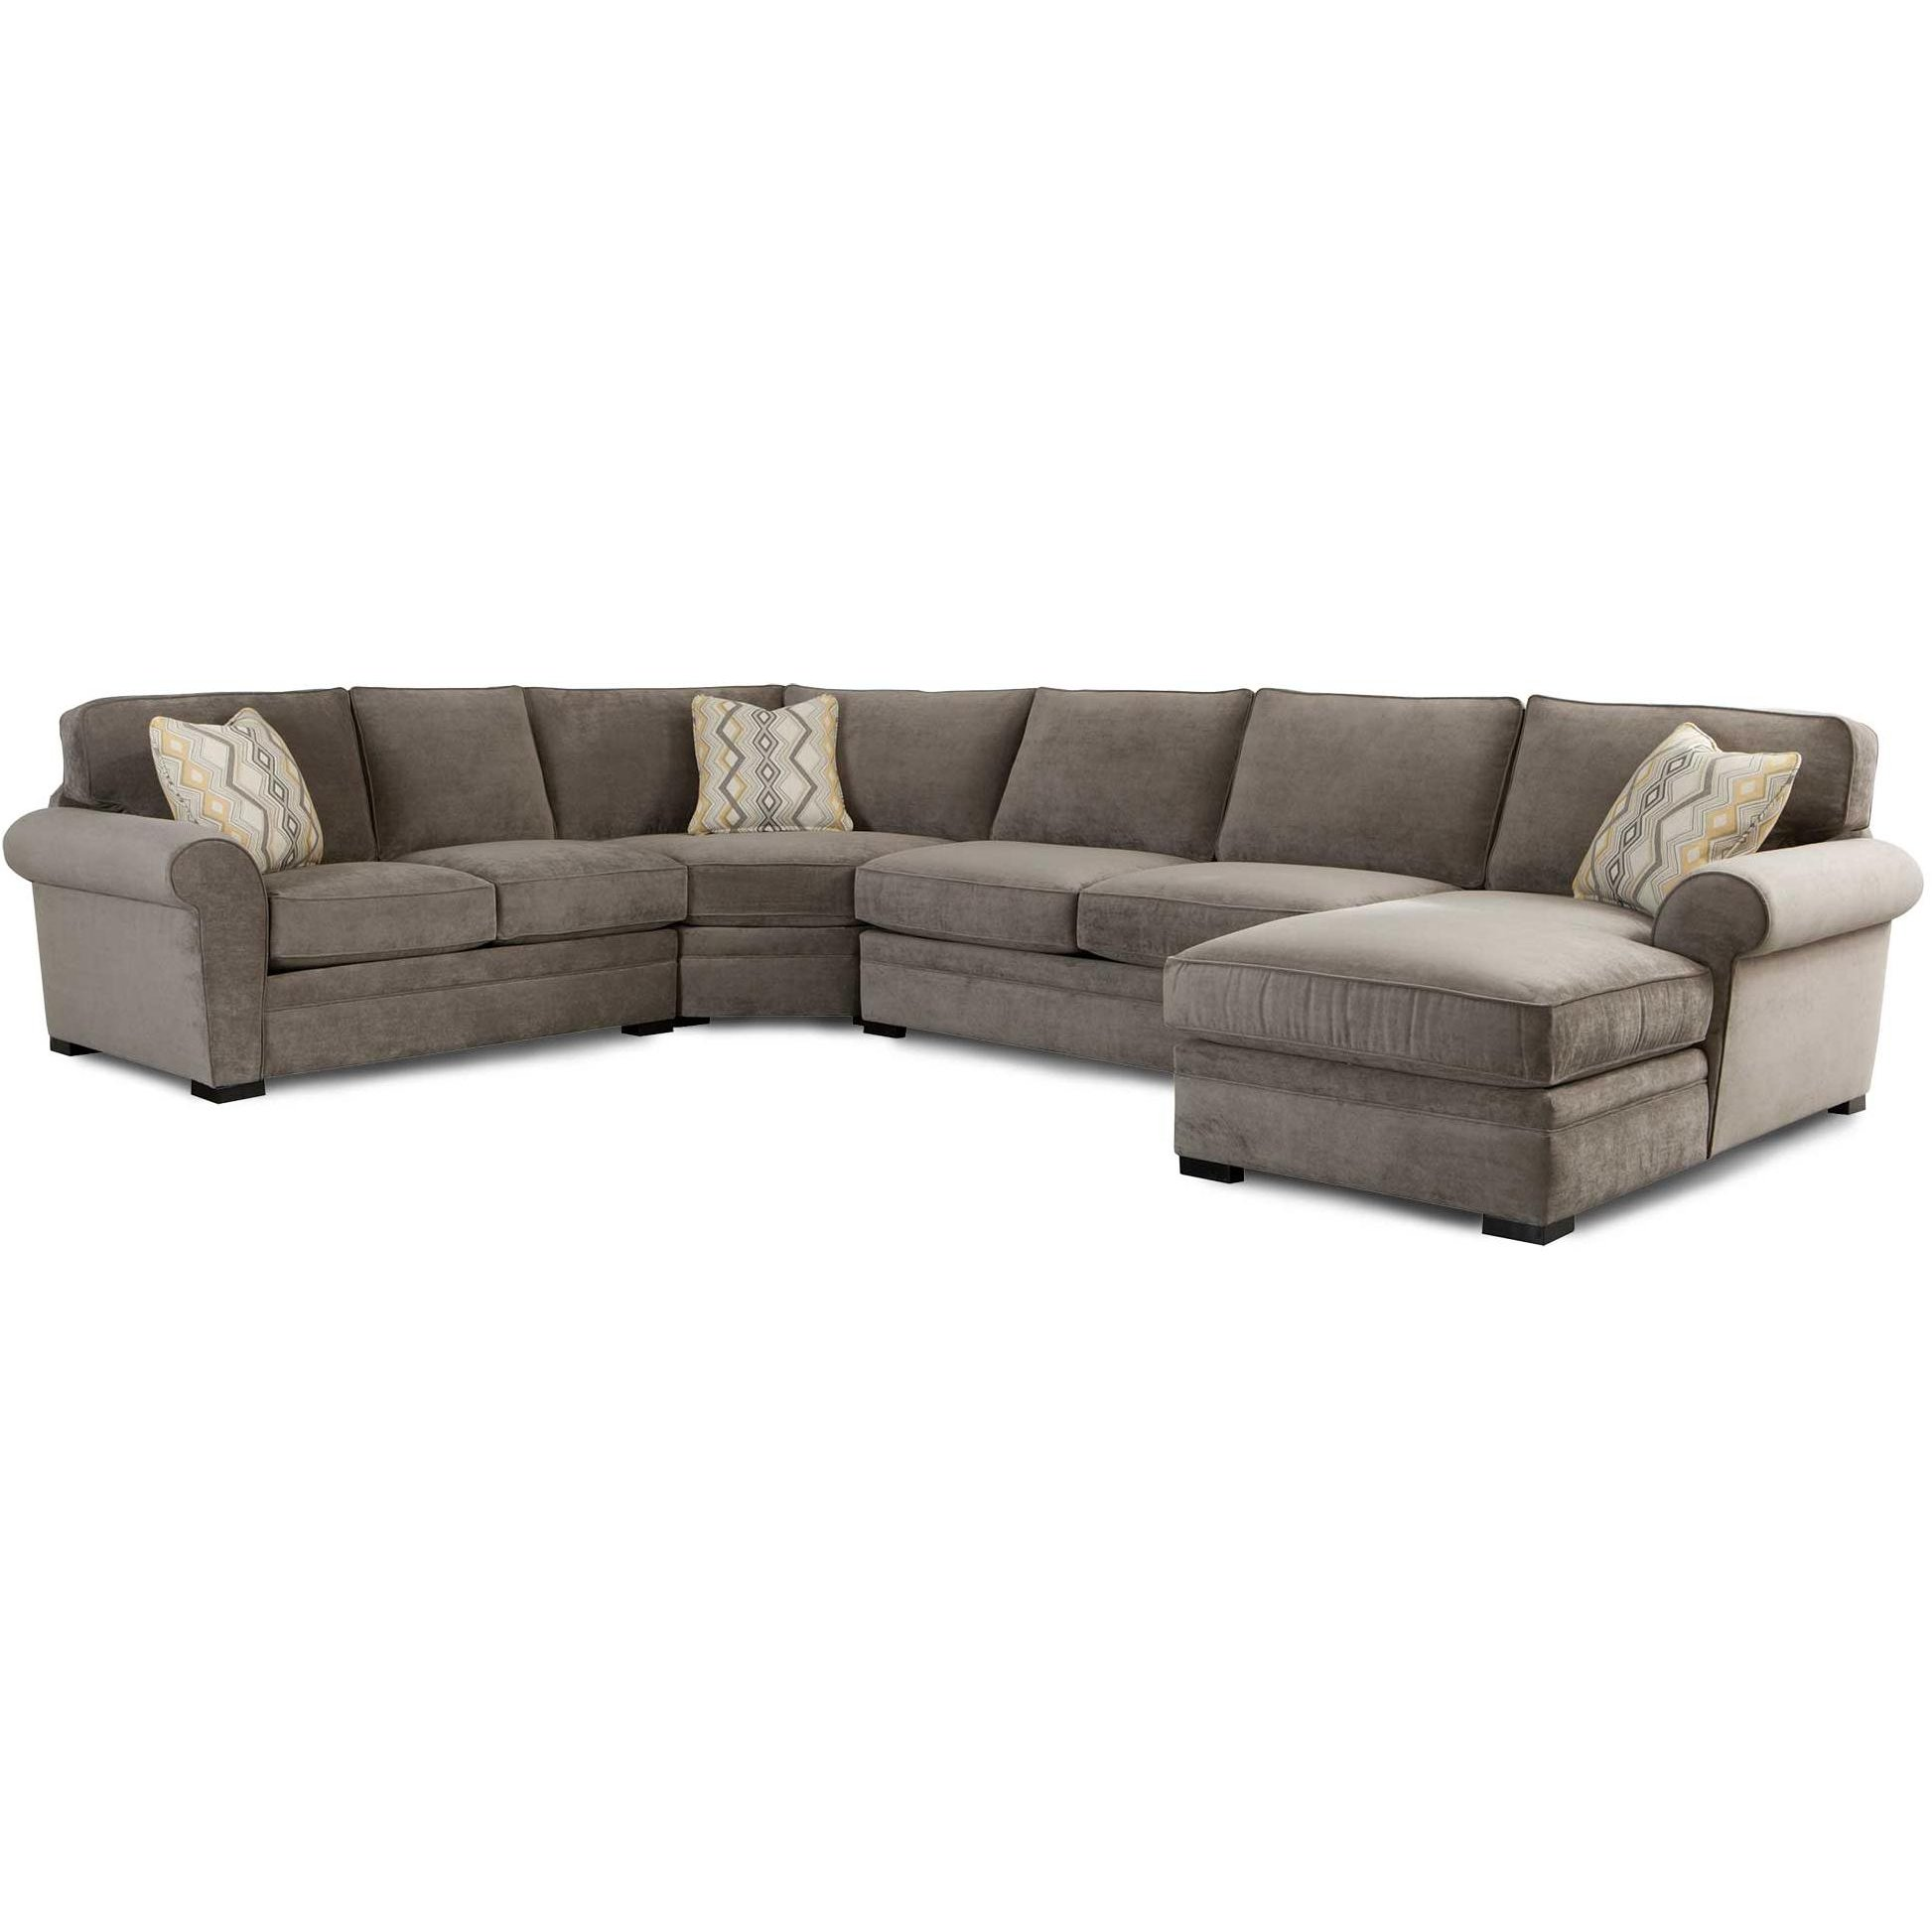 Sectionals fabric sectionals & fabric sectional sofas Searching